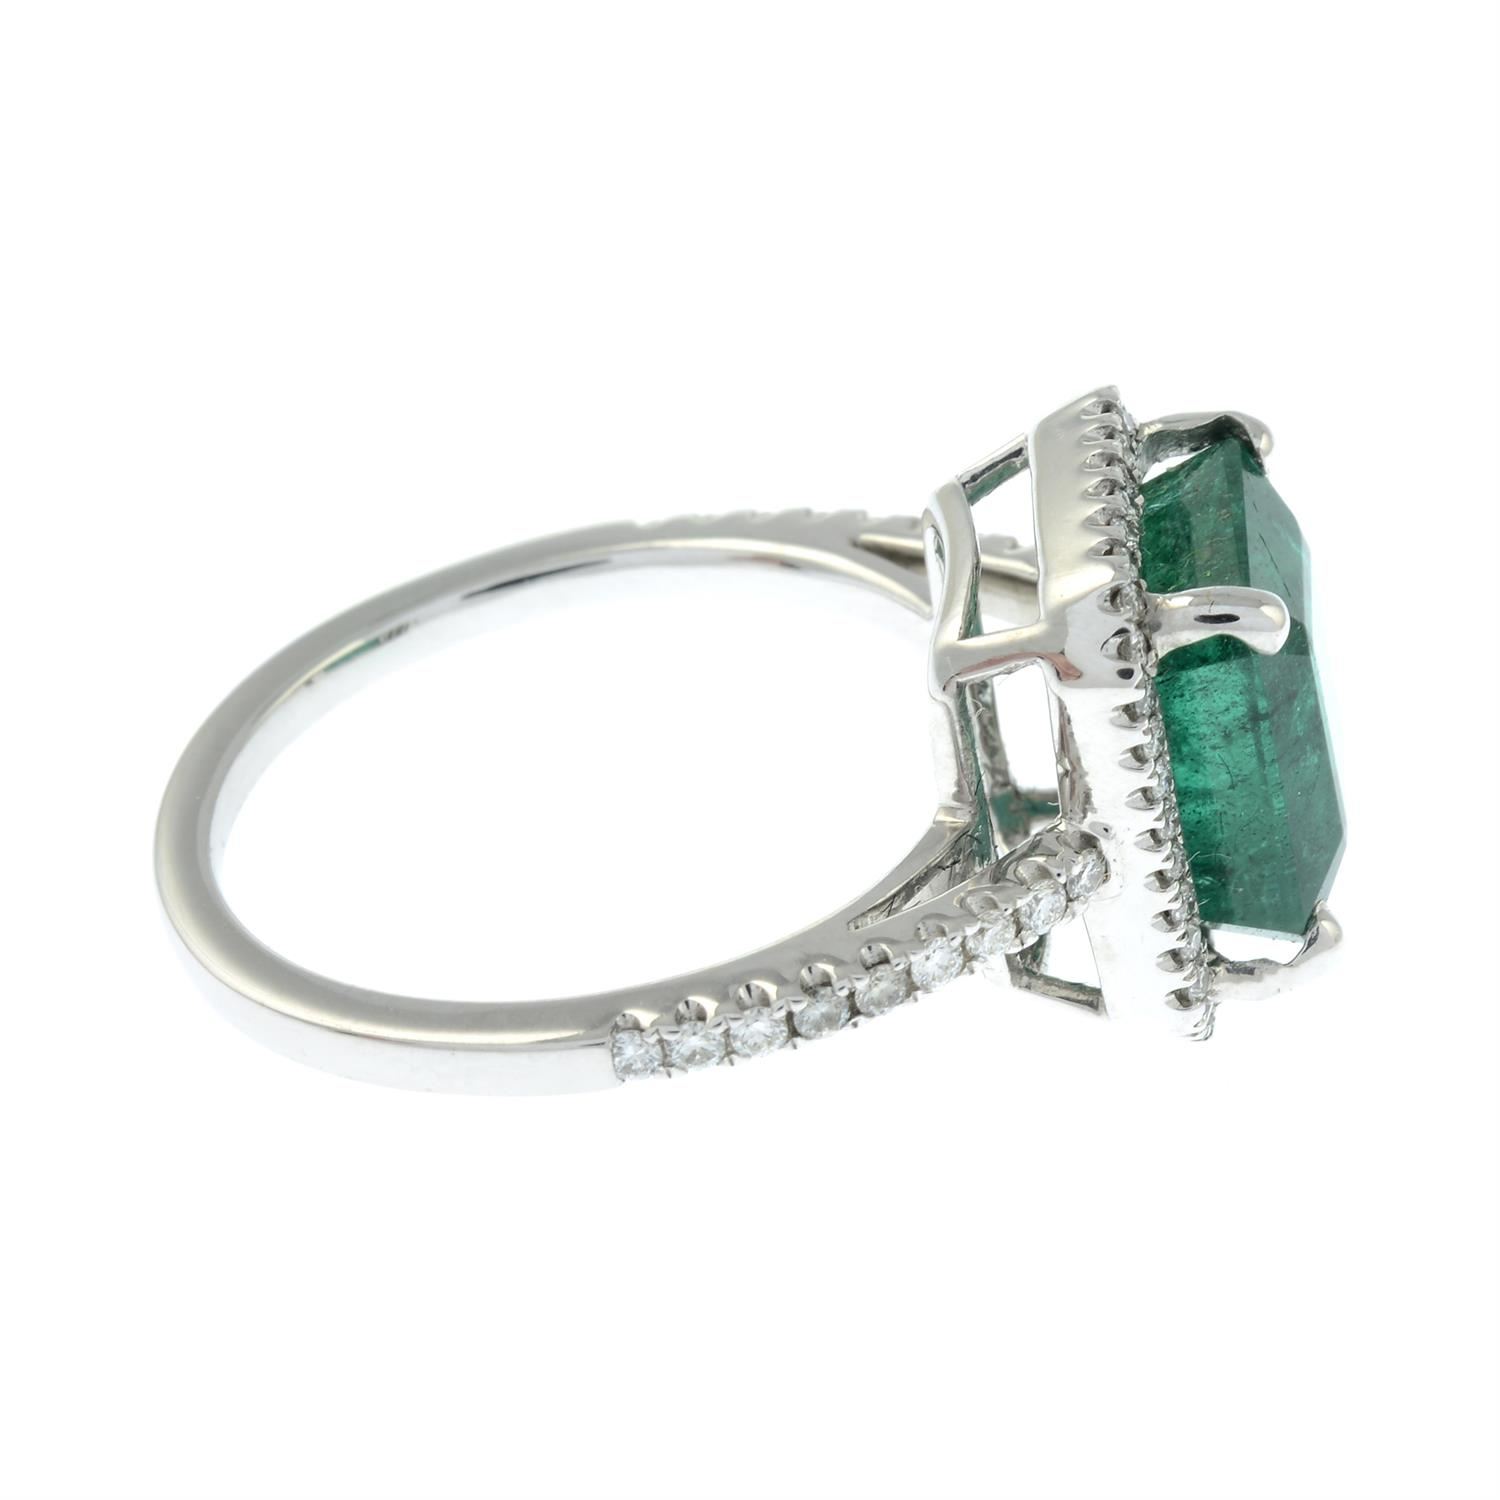 An emerald and brilliant-cut diamond ring. - Image 4 of 6